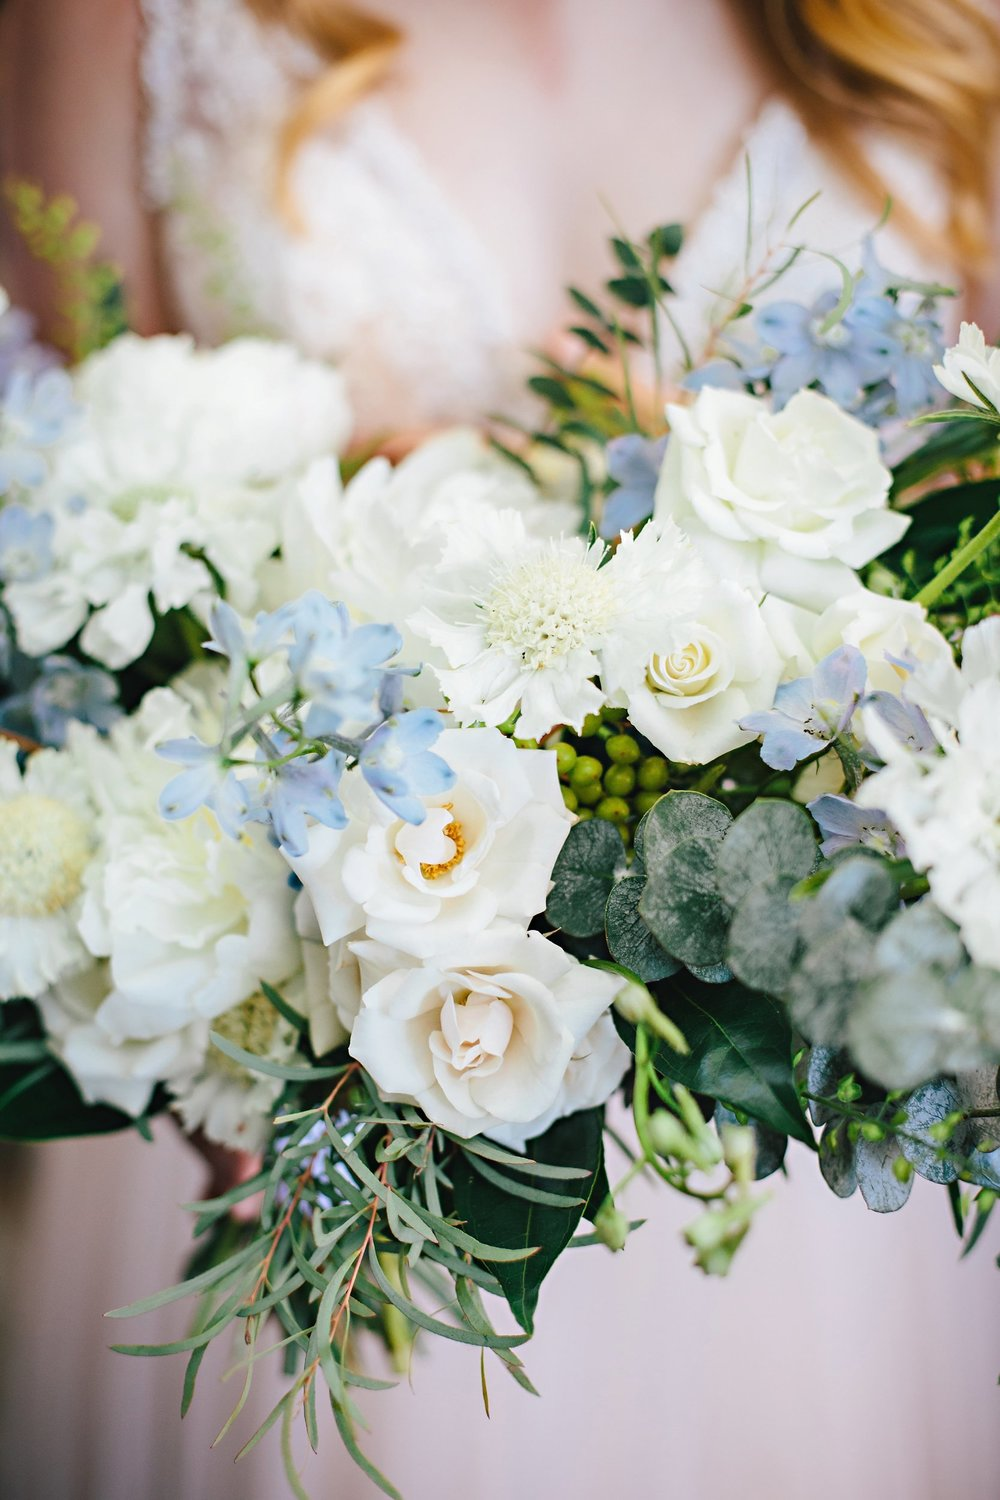 Copy of Summer Garden Wedding: Bridal Bouquet